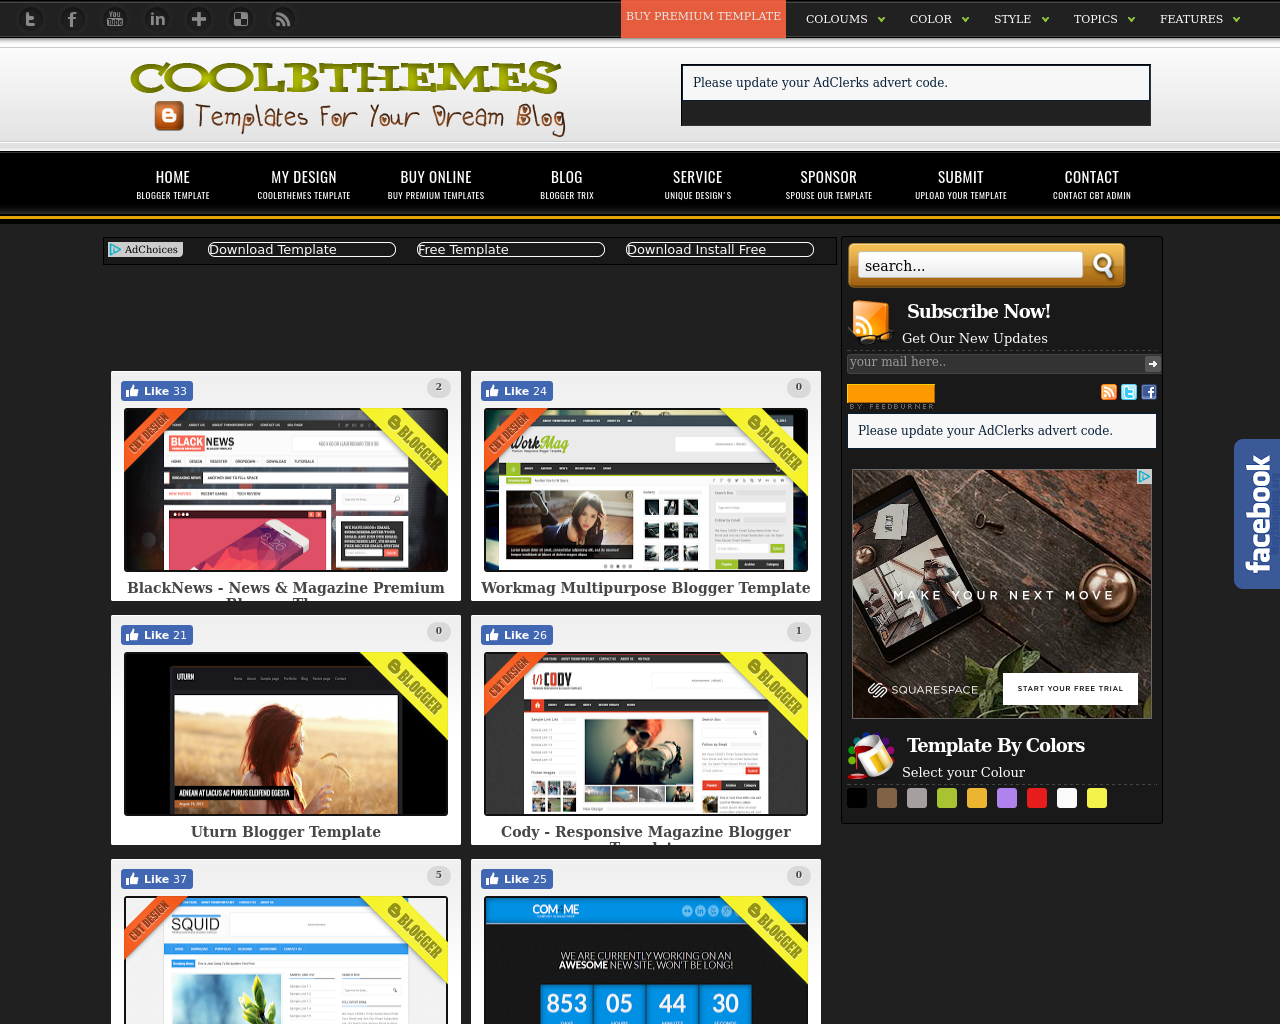 CoolB-Themes-Advertising-Reviews-Pricing